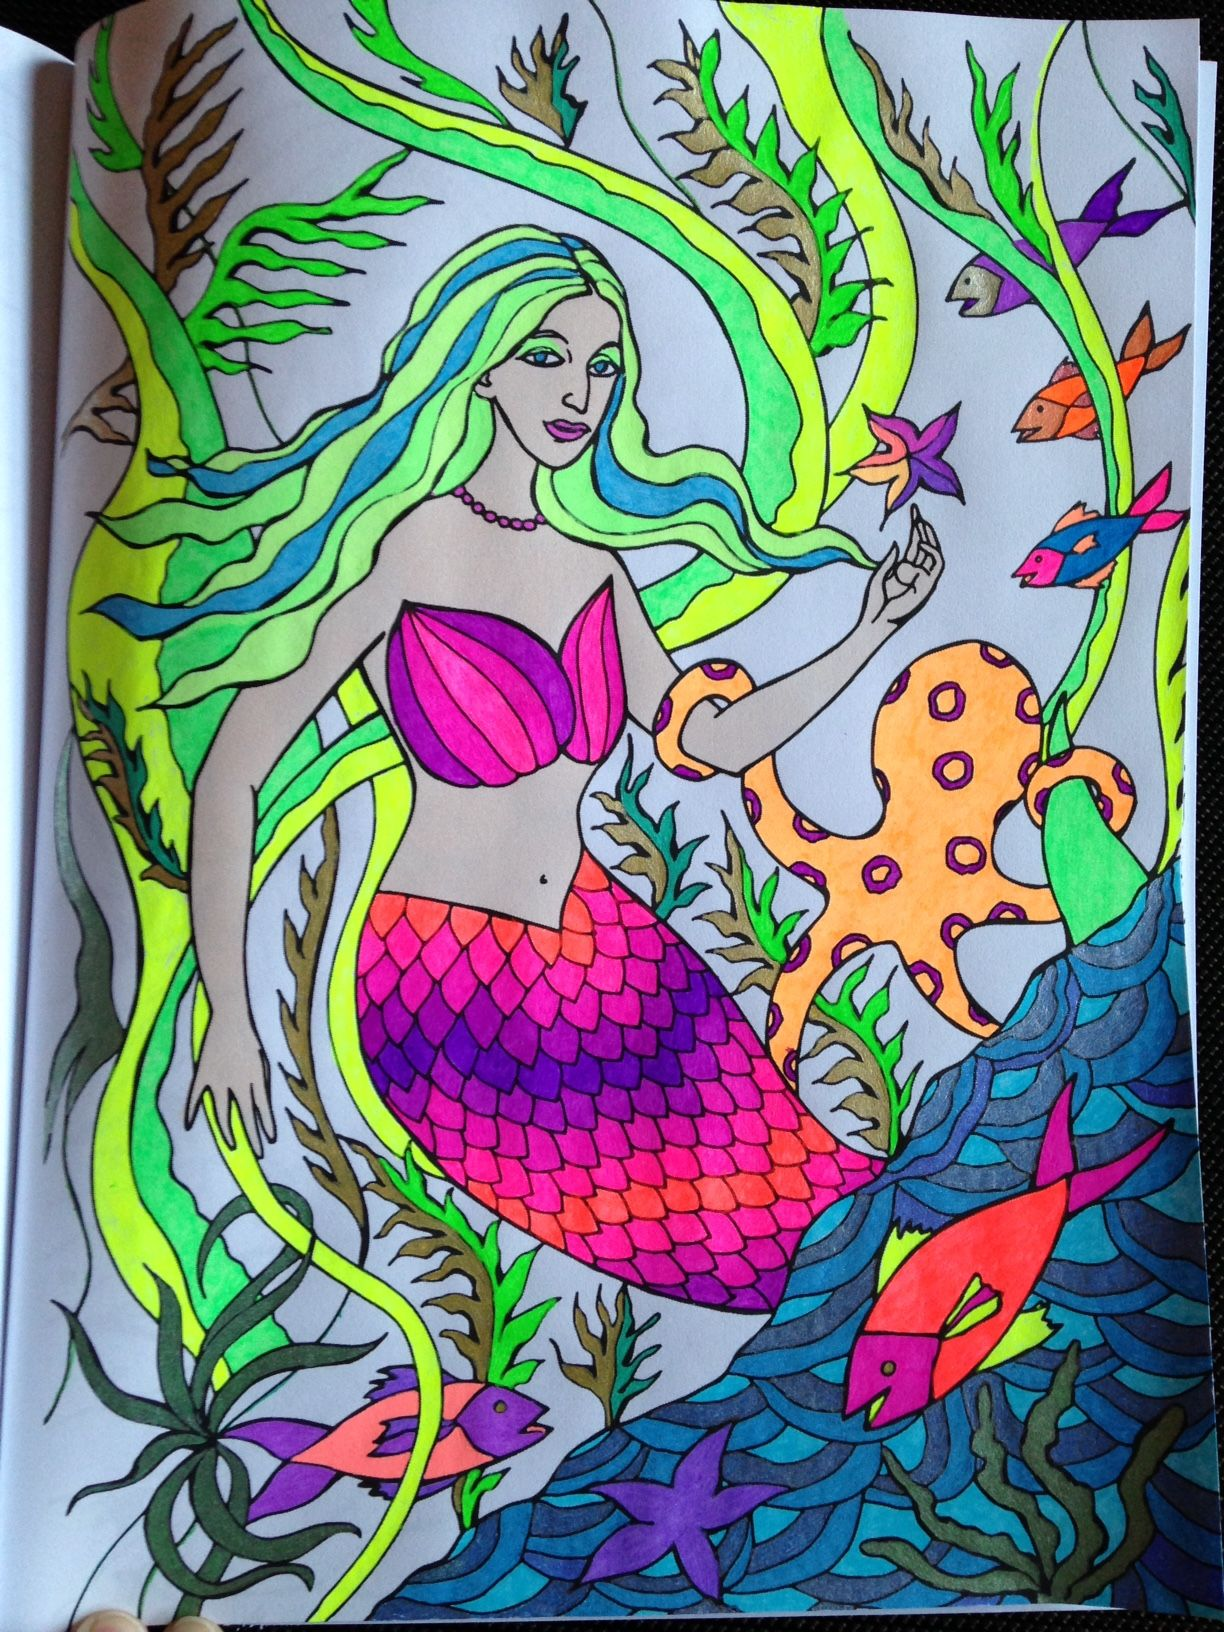 from The Mermaids of Quirly, illustrated by Sonal Panse. Colored by Michele using markers, alcohol markers and sparkle gels.